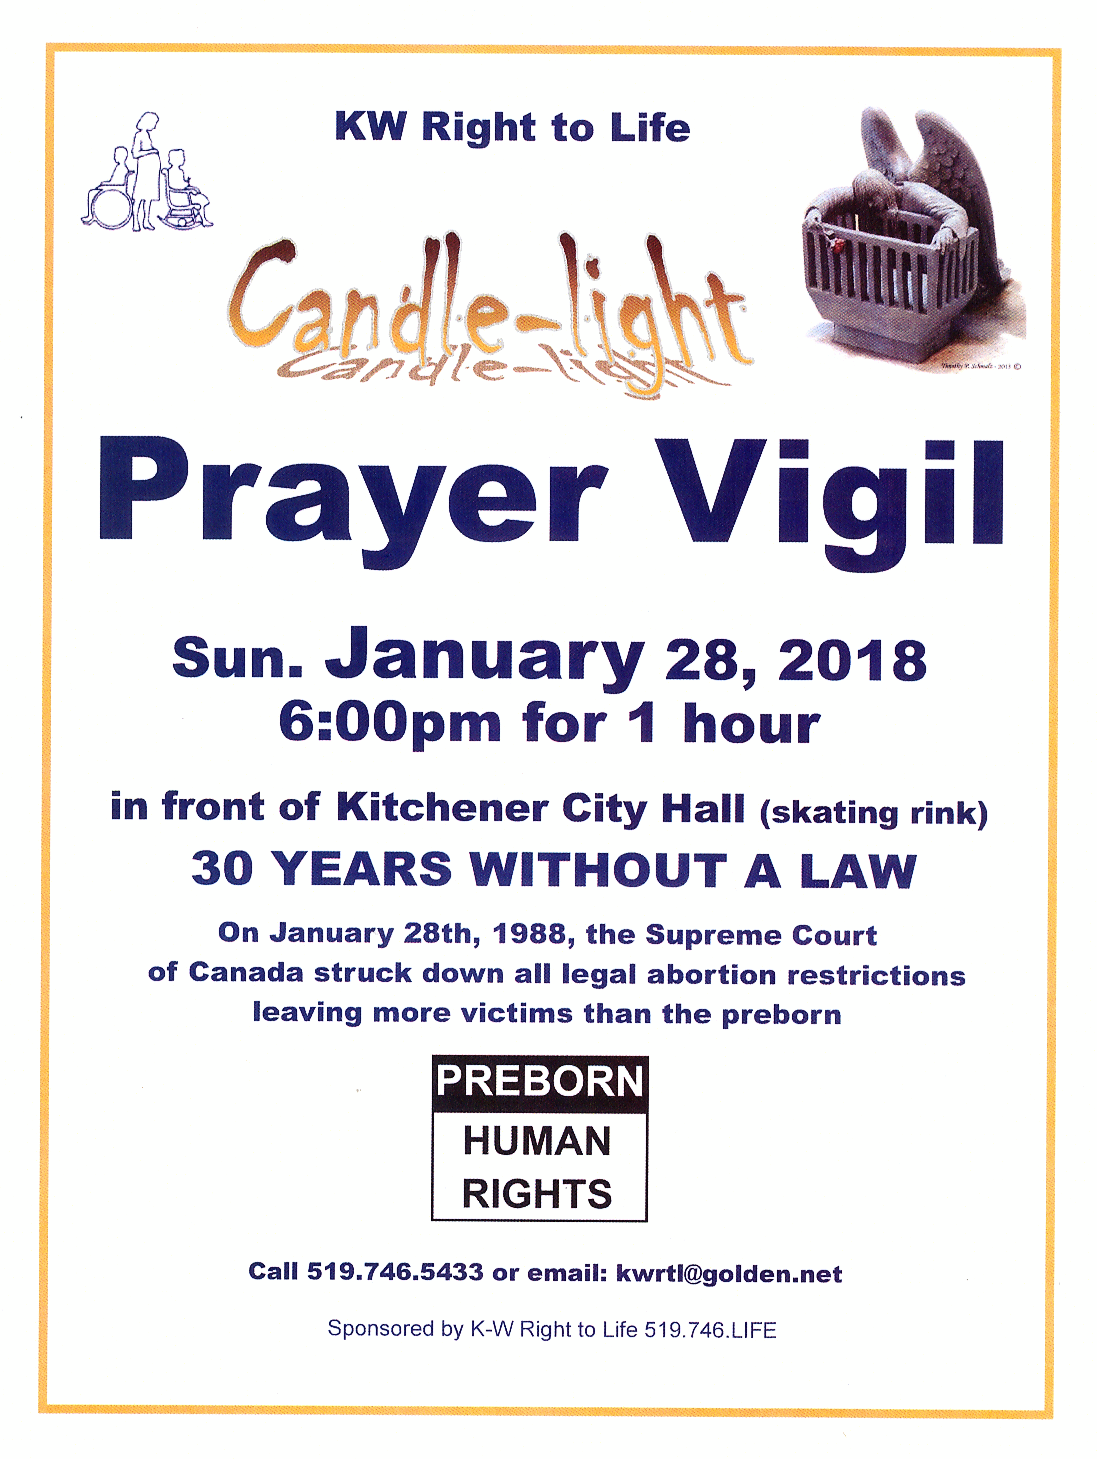 Candle-Light Prayer Vigil for Preborn Human Rights 2018